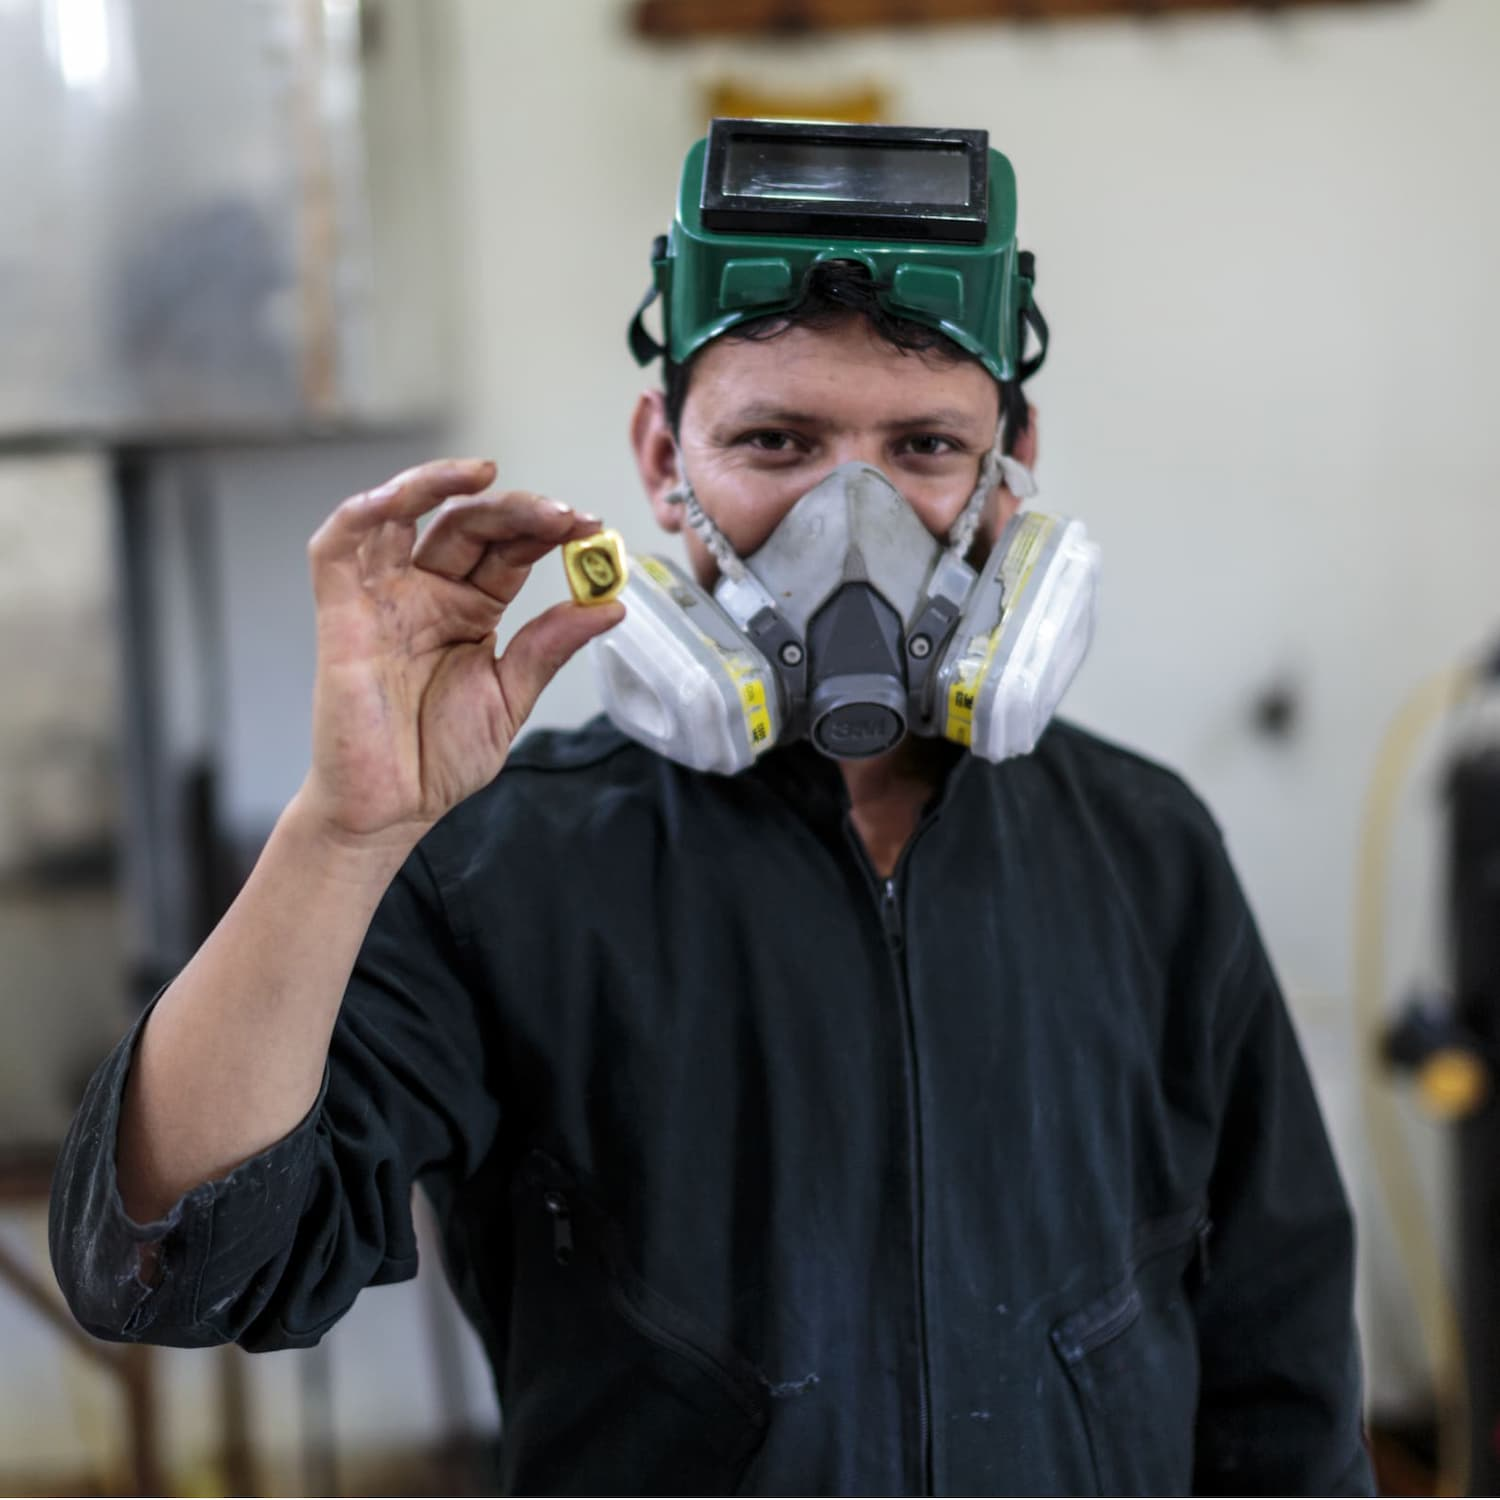 fairmined miner wearing breathing mask in workshop holding a piece of fairmined gold nugget